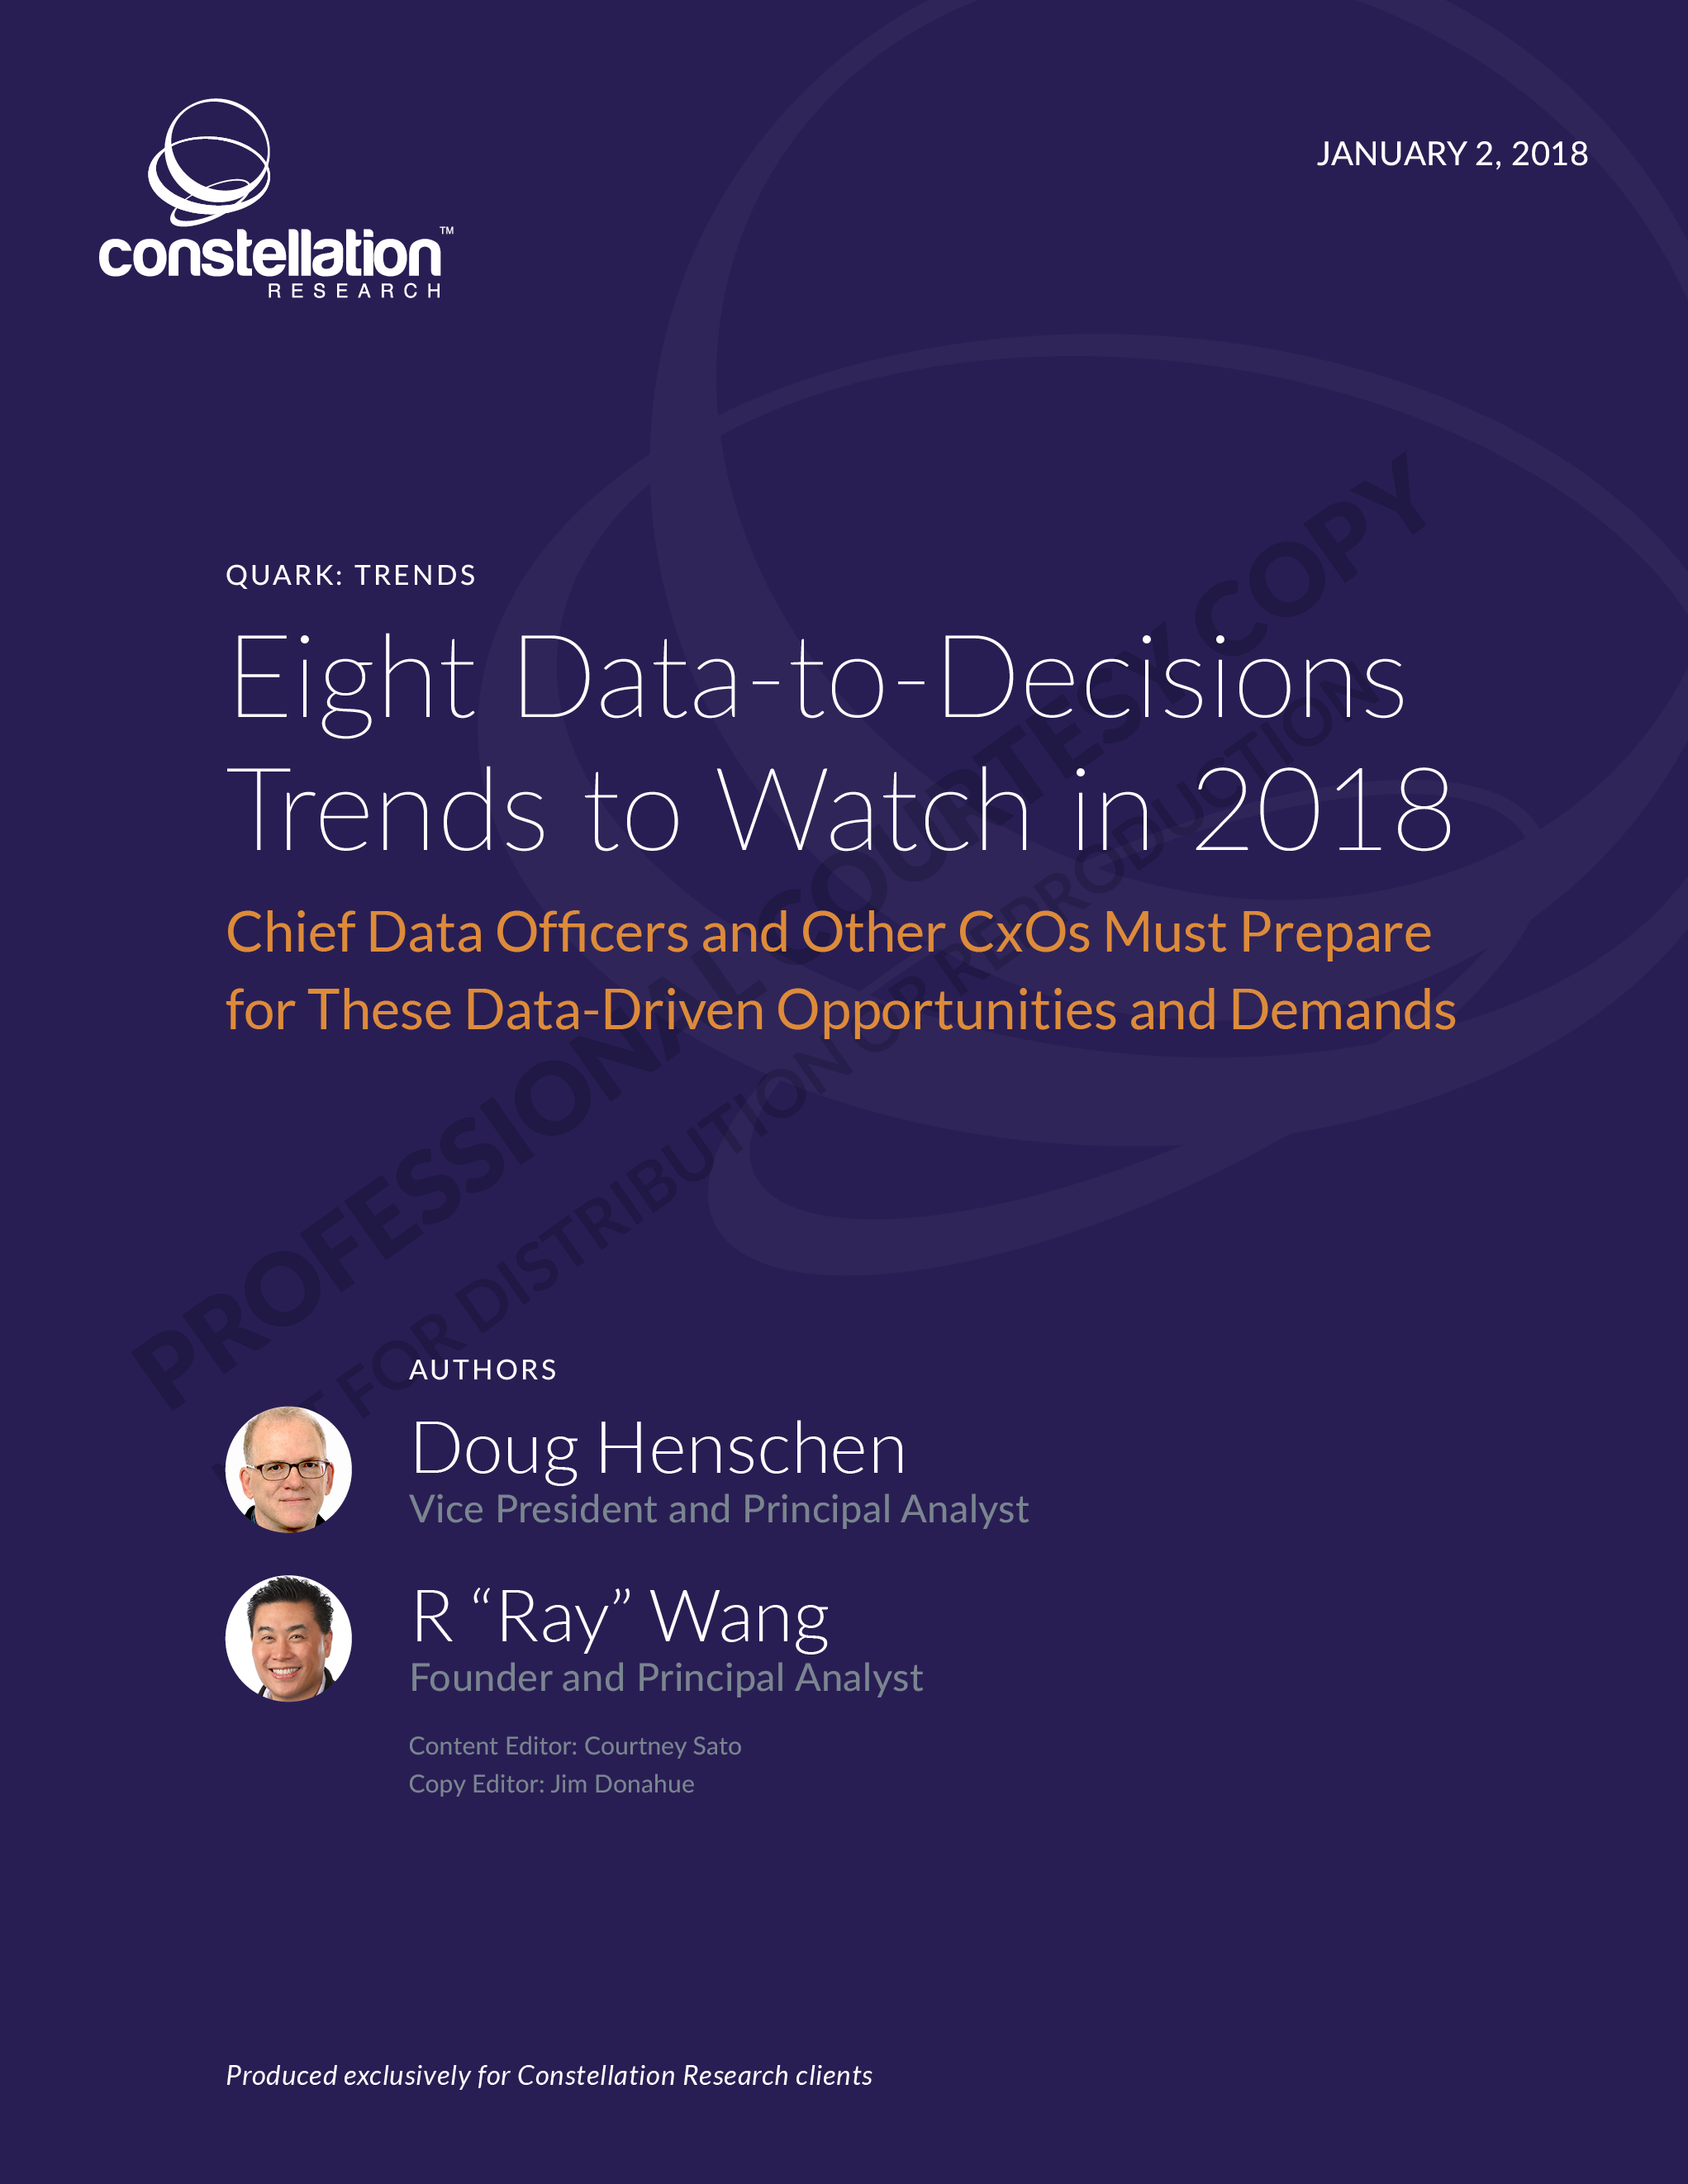 8 Data to Decisions Trends for 2018